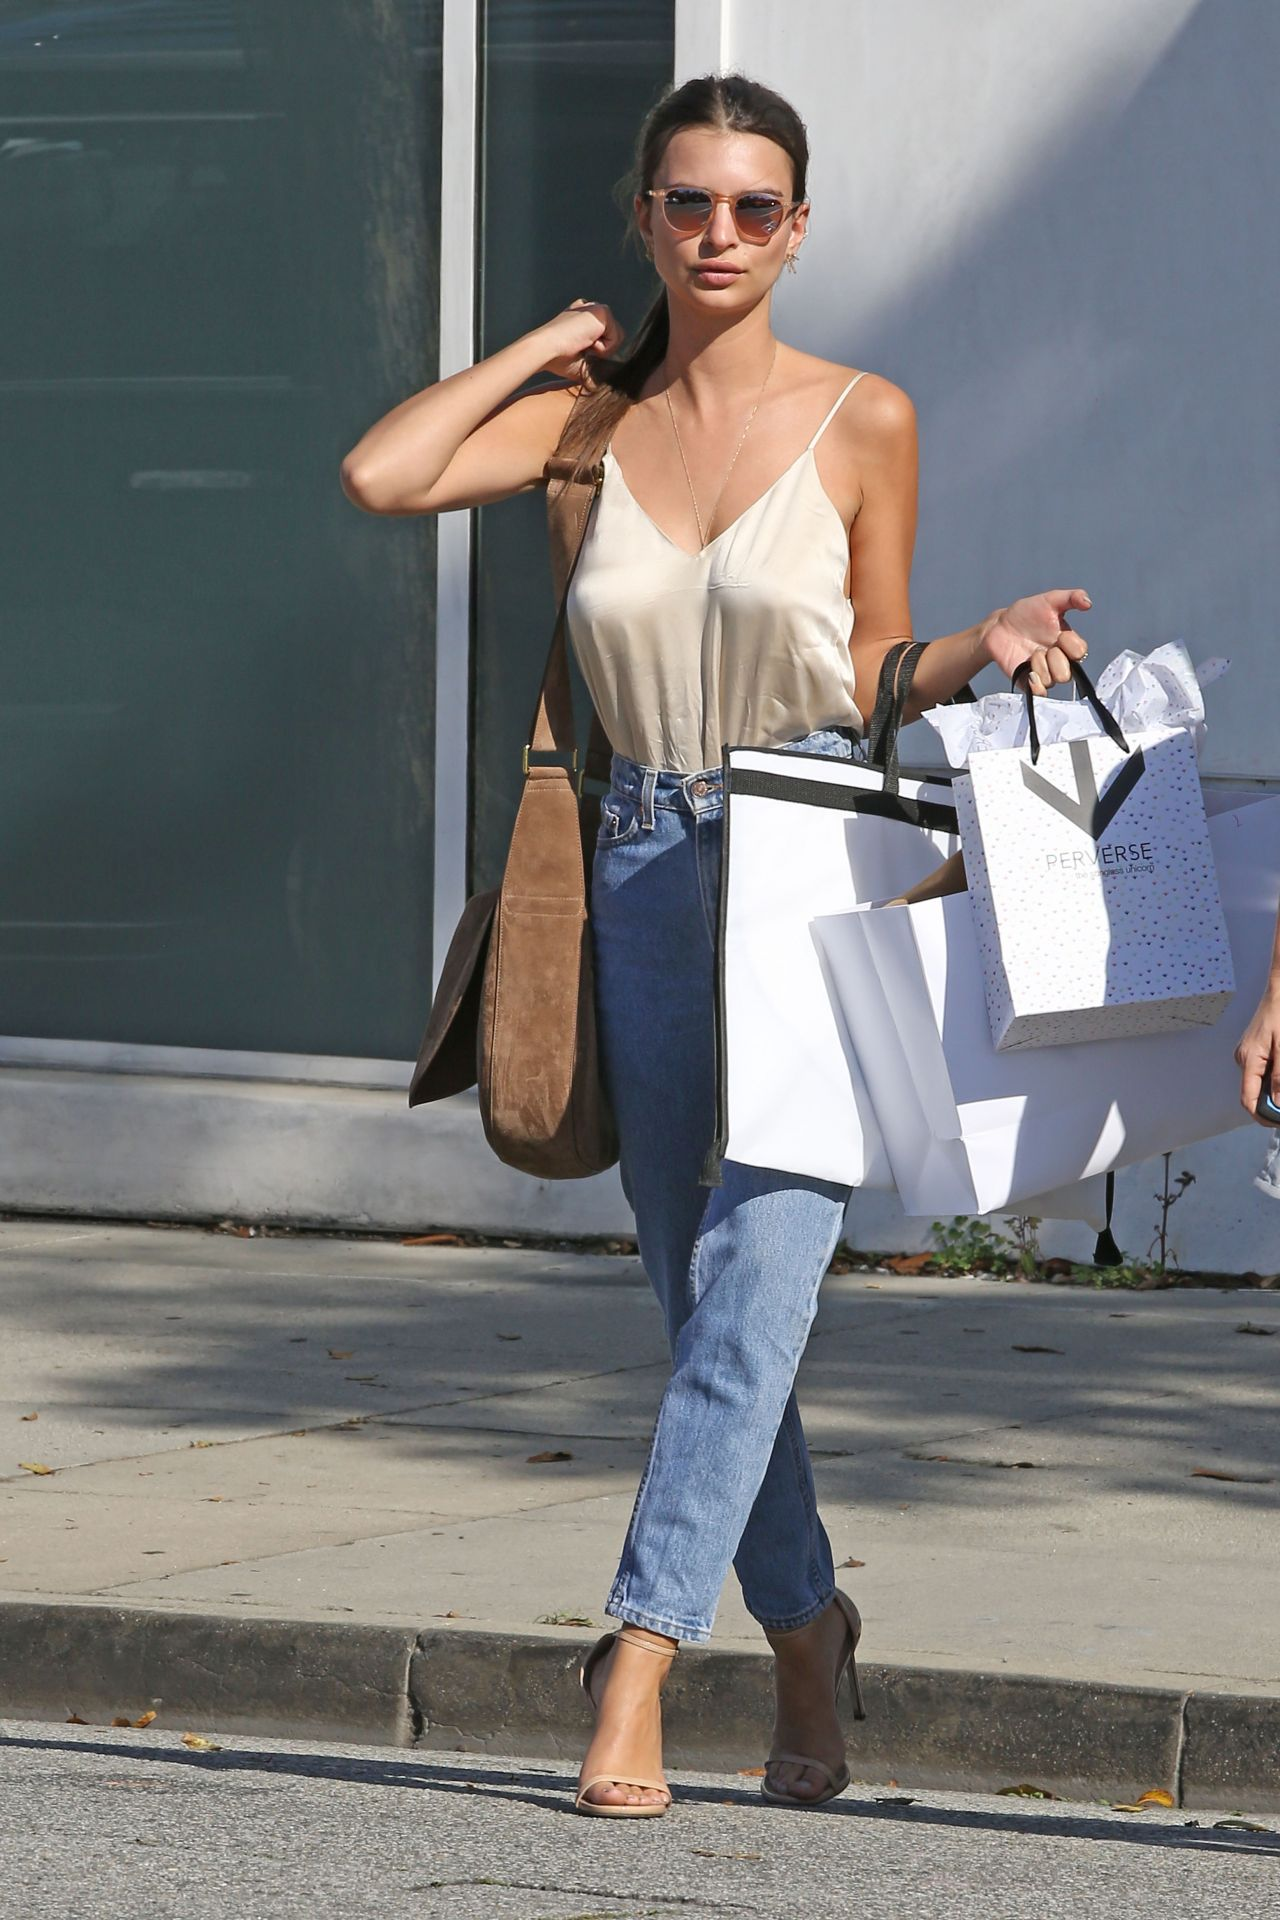 emily ratajkowski casual style shopping in beverly hills 4 12 2016. Black Bedroom Furniture Sets. Home Design Ideas